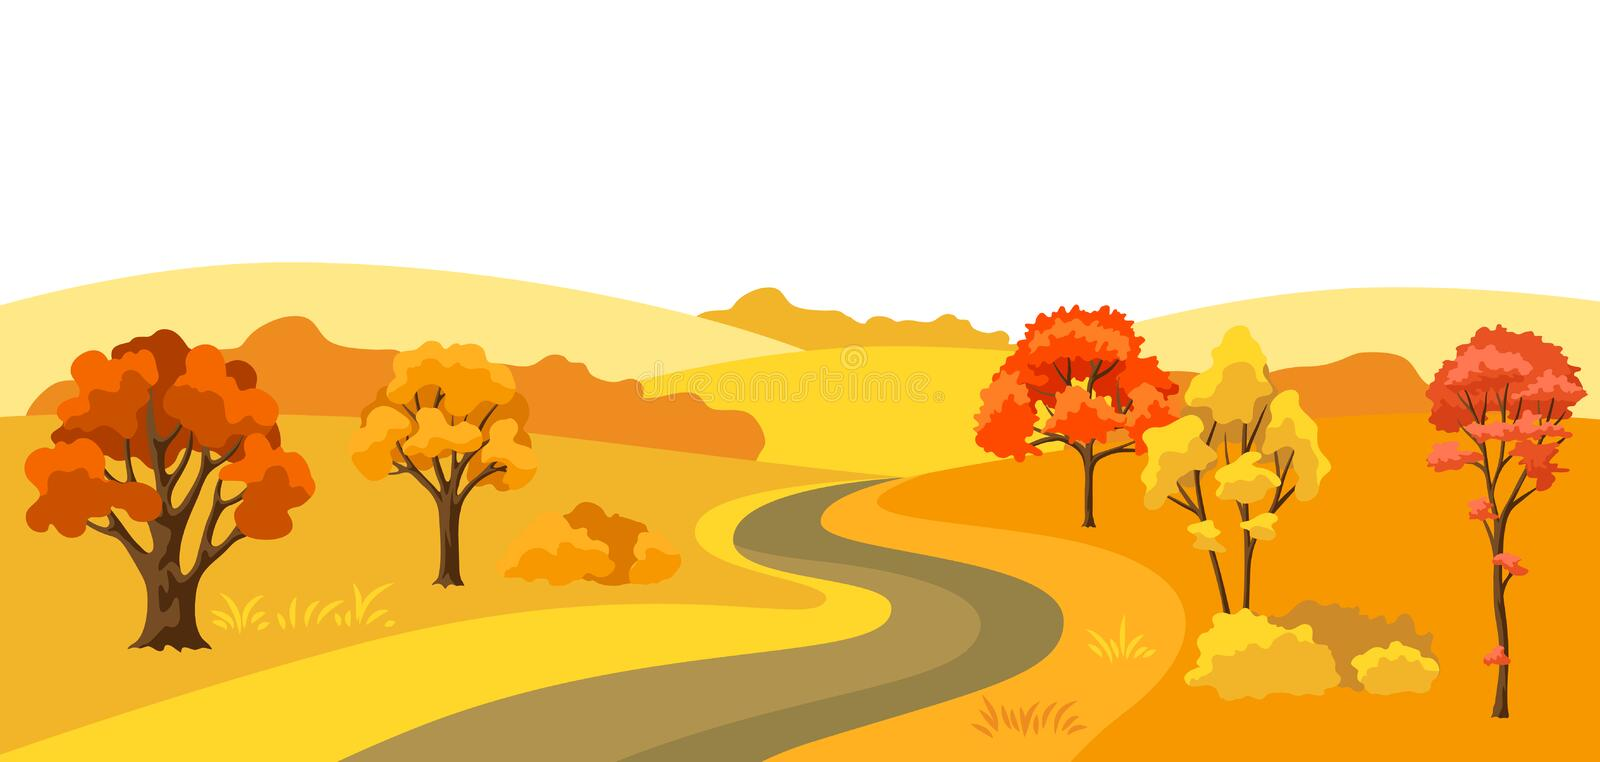 Autumn background with landscape and stylized trees. royalty free illustration